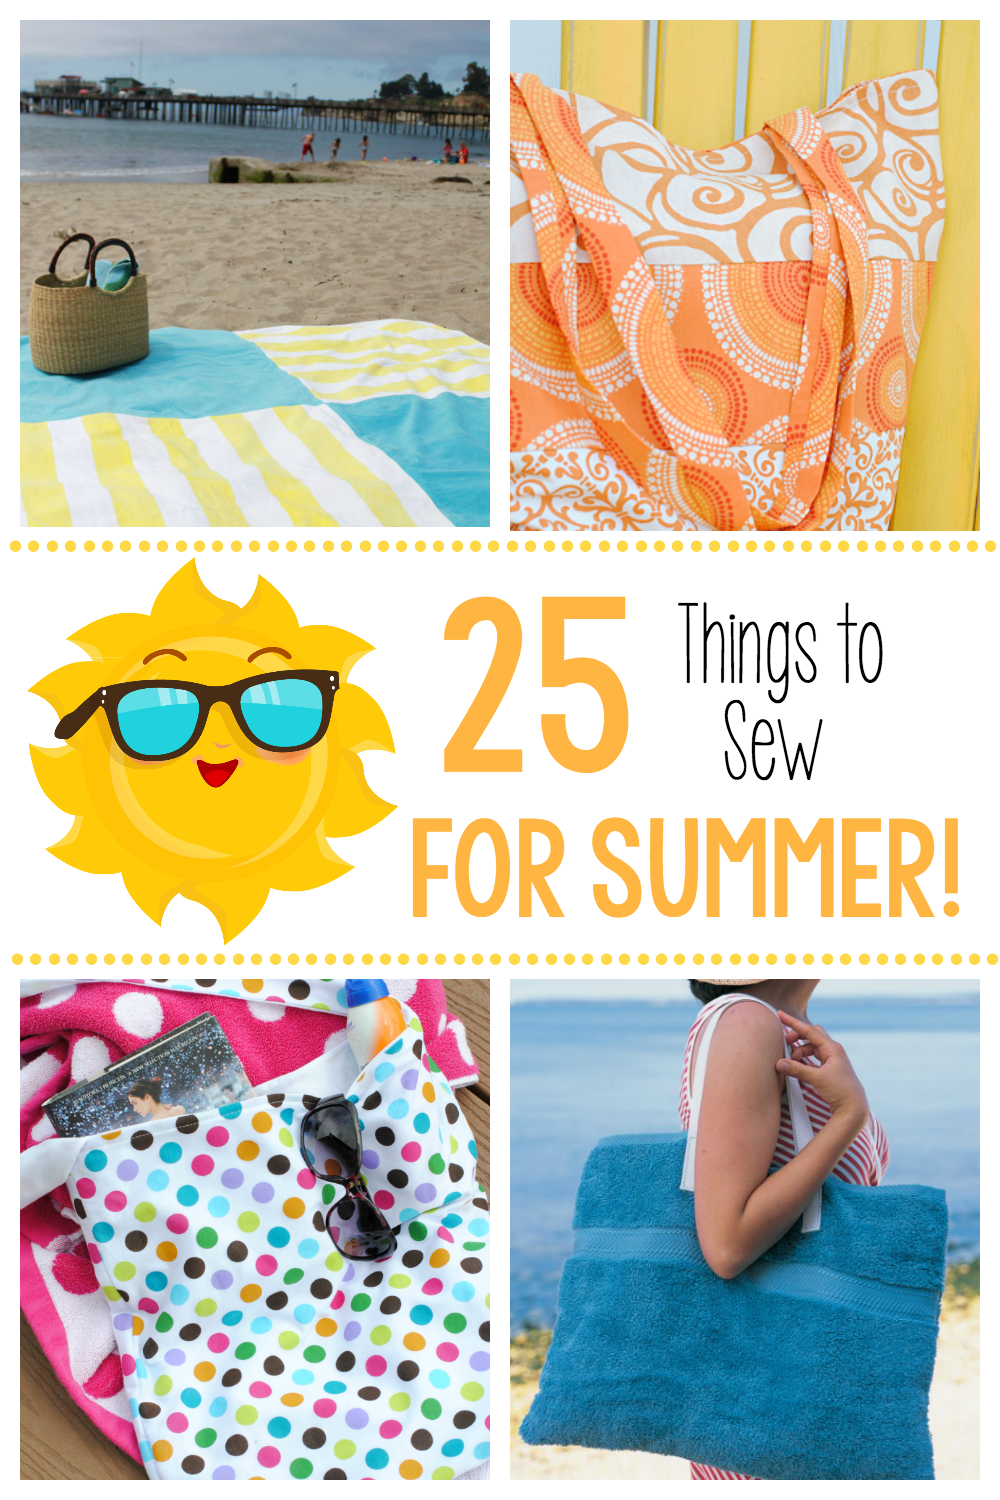 25 Fun Things to Sew for Summer-Great Sewing Projects like Beach Totes and towel blankets to sew for your summer fun! #summer #sewing #summersewing #patterns